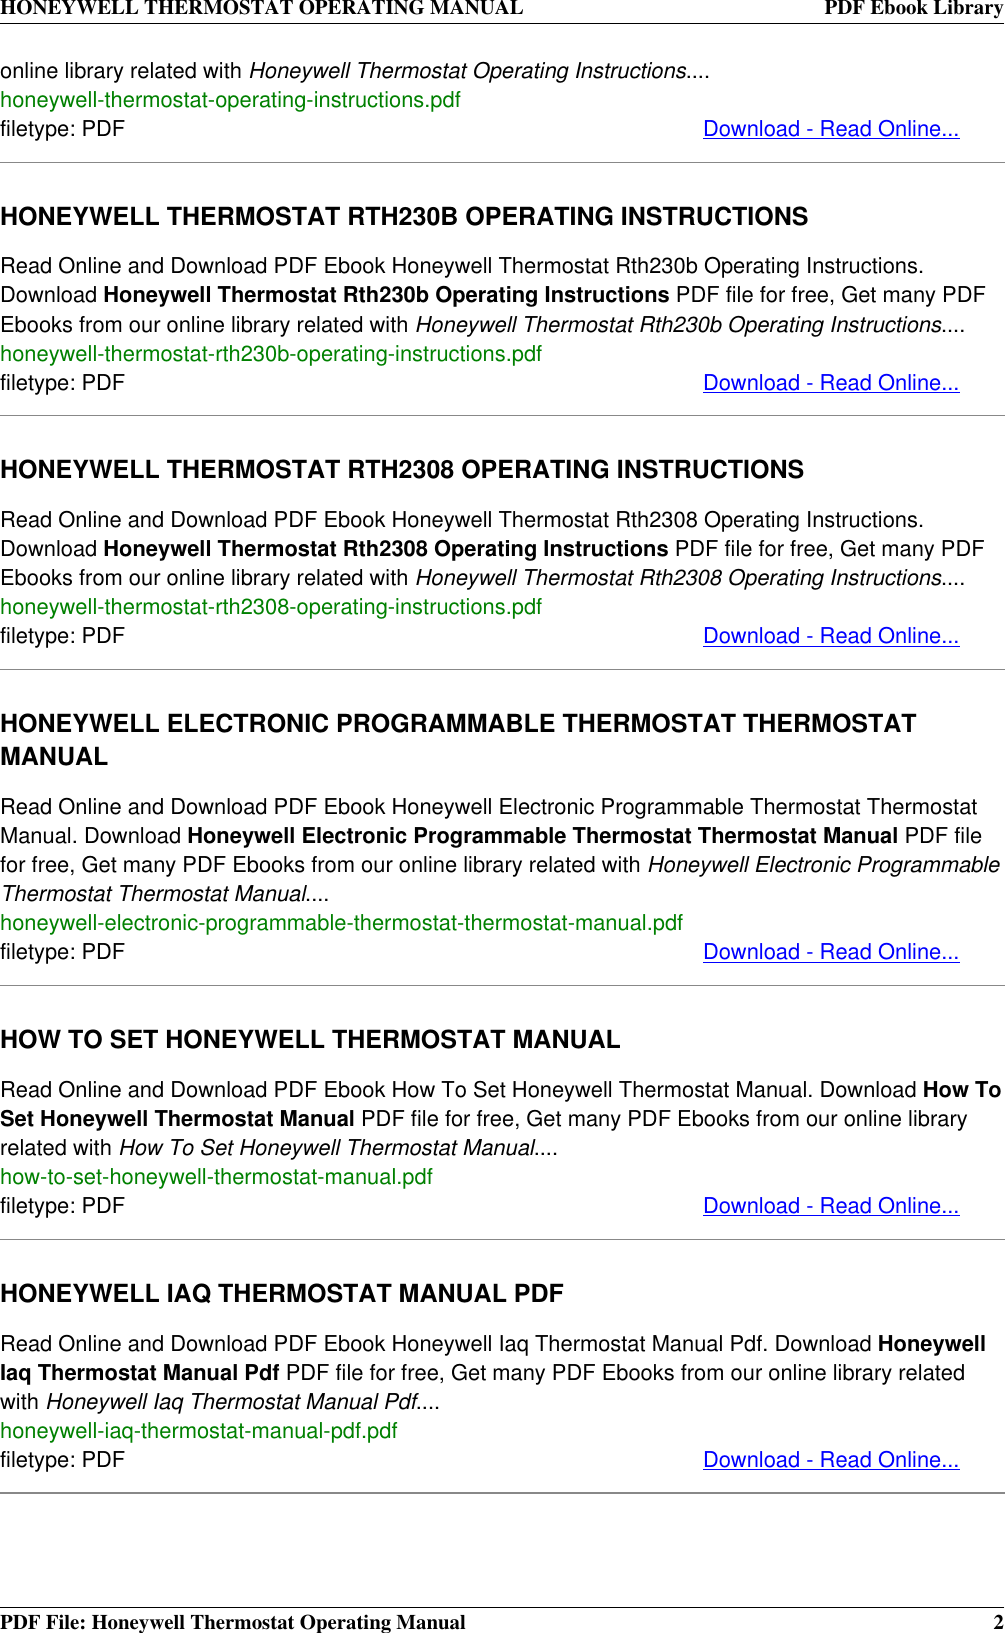 Th350 troubleshooting guide gallery free troubleshooting examples reciprocating compressor troubleshooting guide choice image free mr steam troubleshooting guide image collections free reciprocating compressor fandeluxe Choice Image